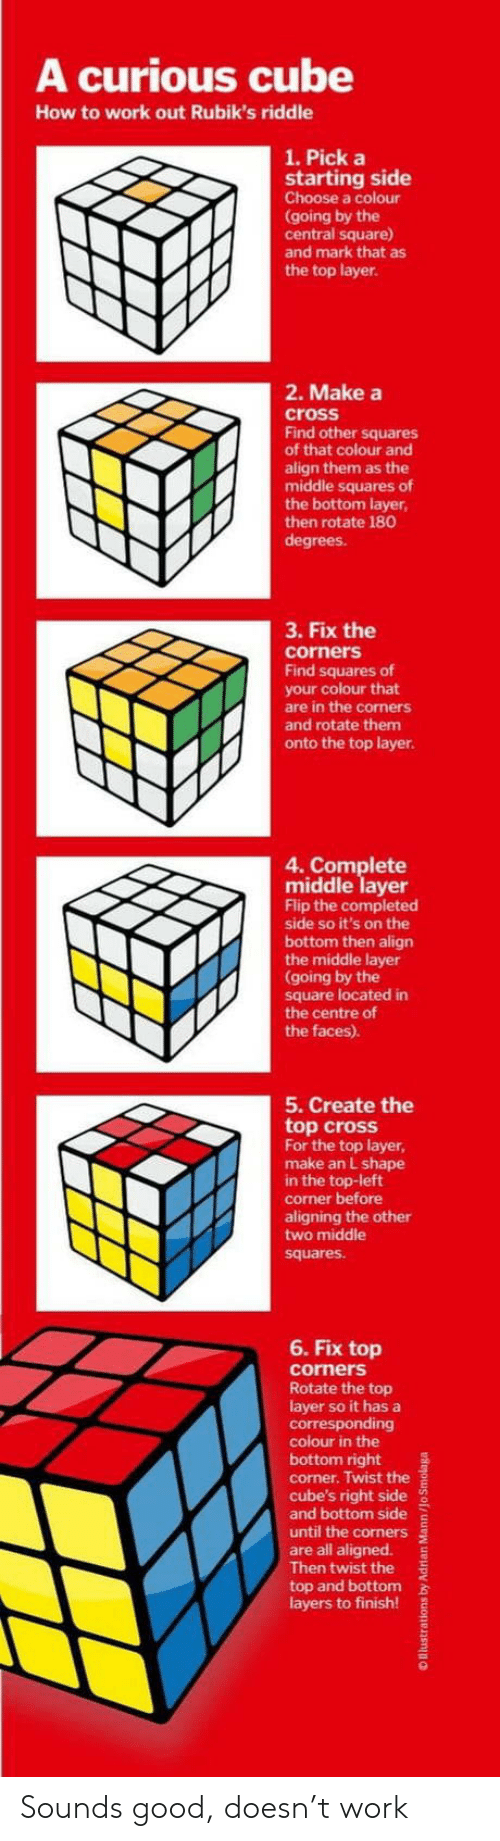 Work, Cross, and Good: A curious cube  How to work out Rubik's riddle  1. Pick a  starting side  Choose a colour  going by the  central square)  and mark that as  the top layer.  2. Make a  cross  Find other squares  of that colour and  align them as the  middle squares of  the bottom layer  then rotate 180  3. Fix the  corners  Find squares of  your colour that  are in the corners  and rotate them  onto the top layer  4. Complete  middle layer  Flip the completed  side so it's on the  bottom then align  the middle layer  (going by the  square located in  the centre of  the faces).  5. Create the  top cross  For the top layer,  make an L shape  in the top-left  corner before  aligning the other  two middle  squares  6. Fix top  corners  Rotate the top  layer so it has a  corresponding  colour in the  bottom right  corner. Twist the  cube's right side  and bottom side E  until the corners  are all aligned.  Then twist the  top and bottom  layers to finish!  2 Sounds good, doesn't work